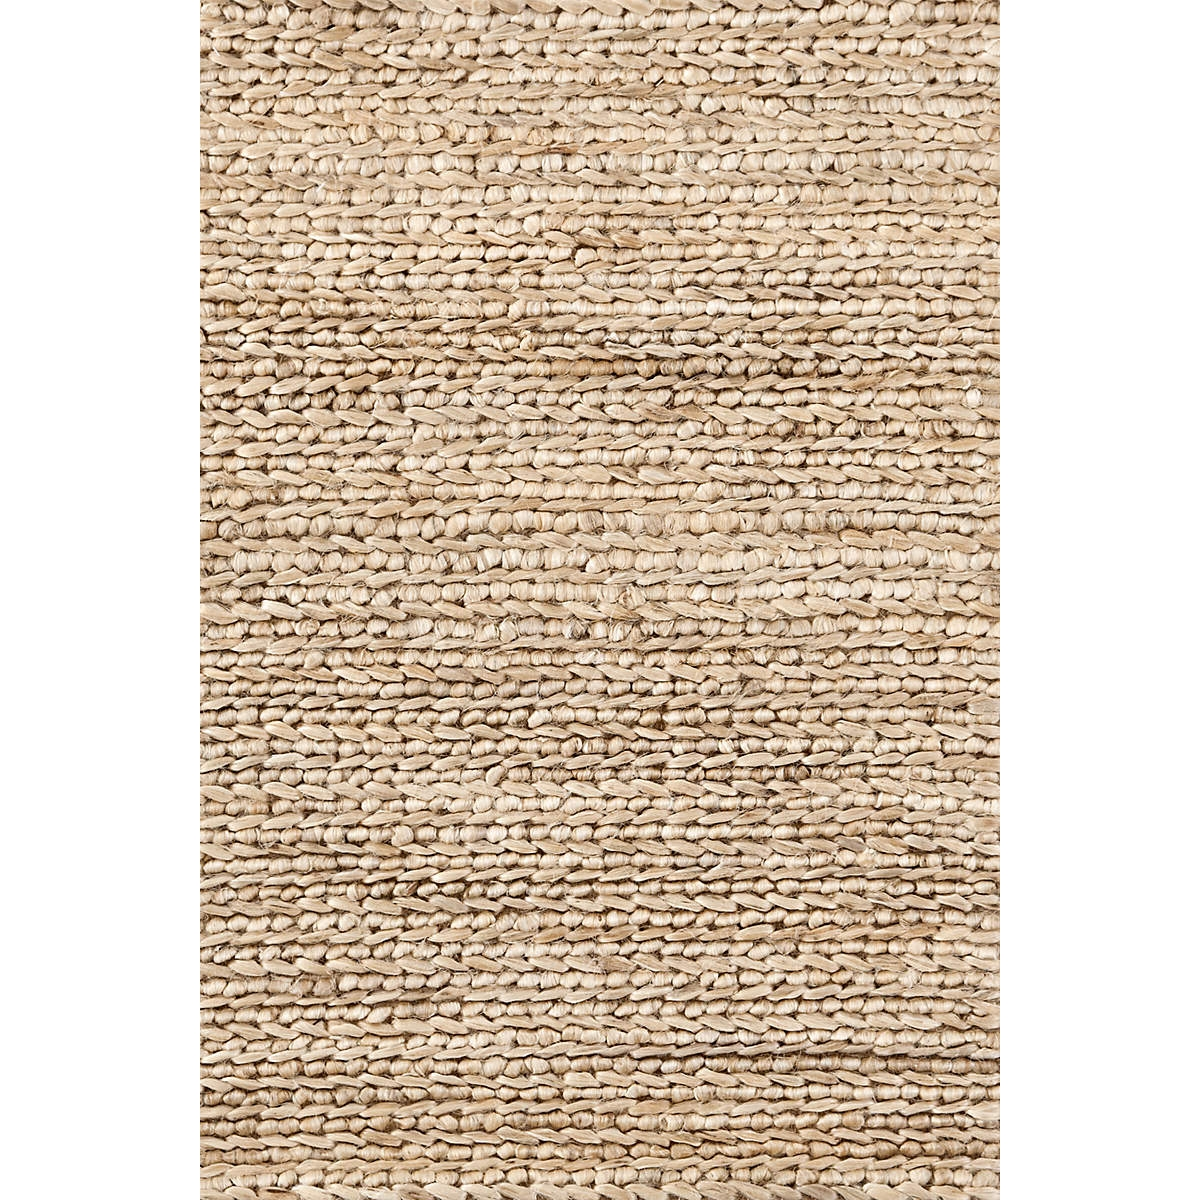 Jute Woven Natural Rug Dash Albert American Country Intended For Natural Rugs (Image 3 of 15)